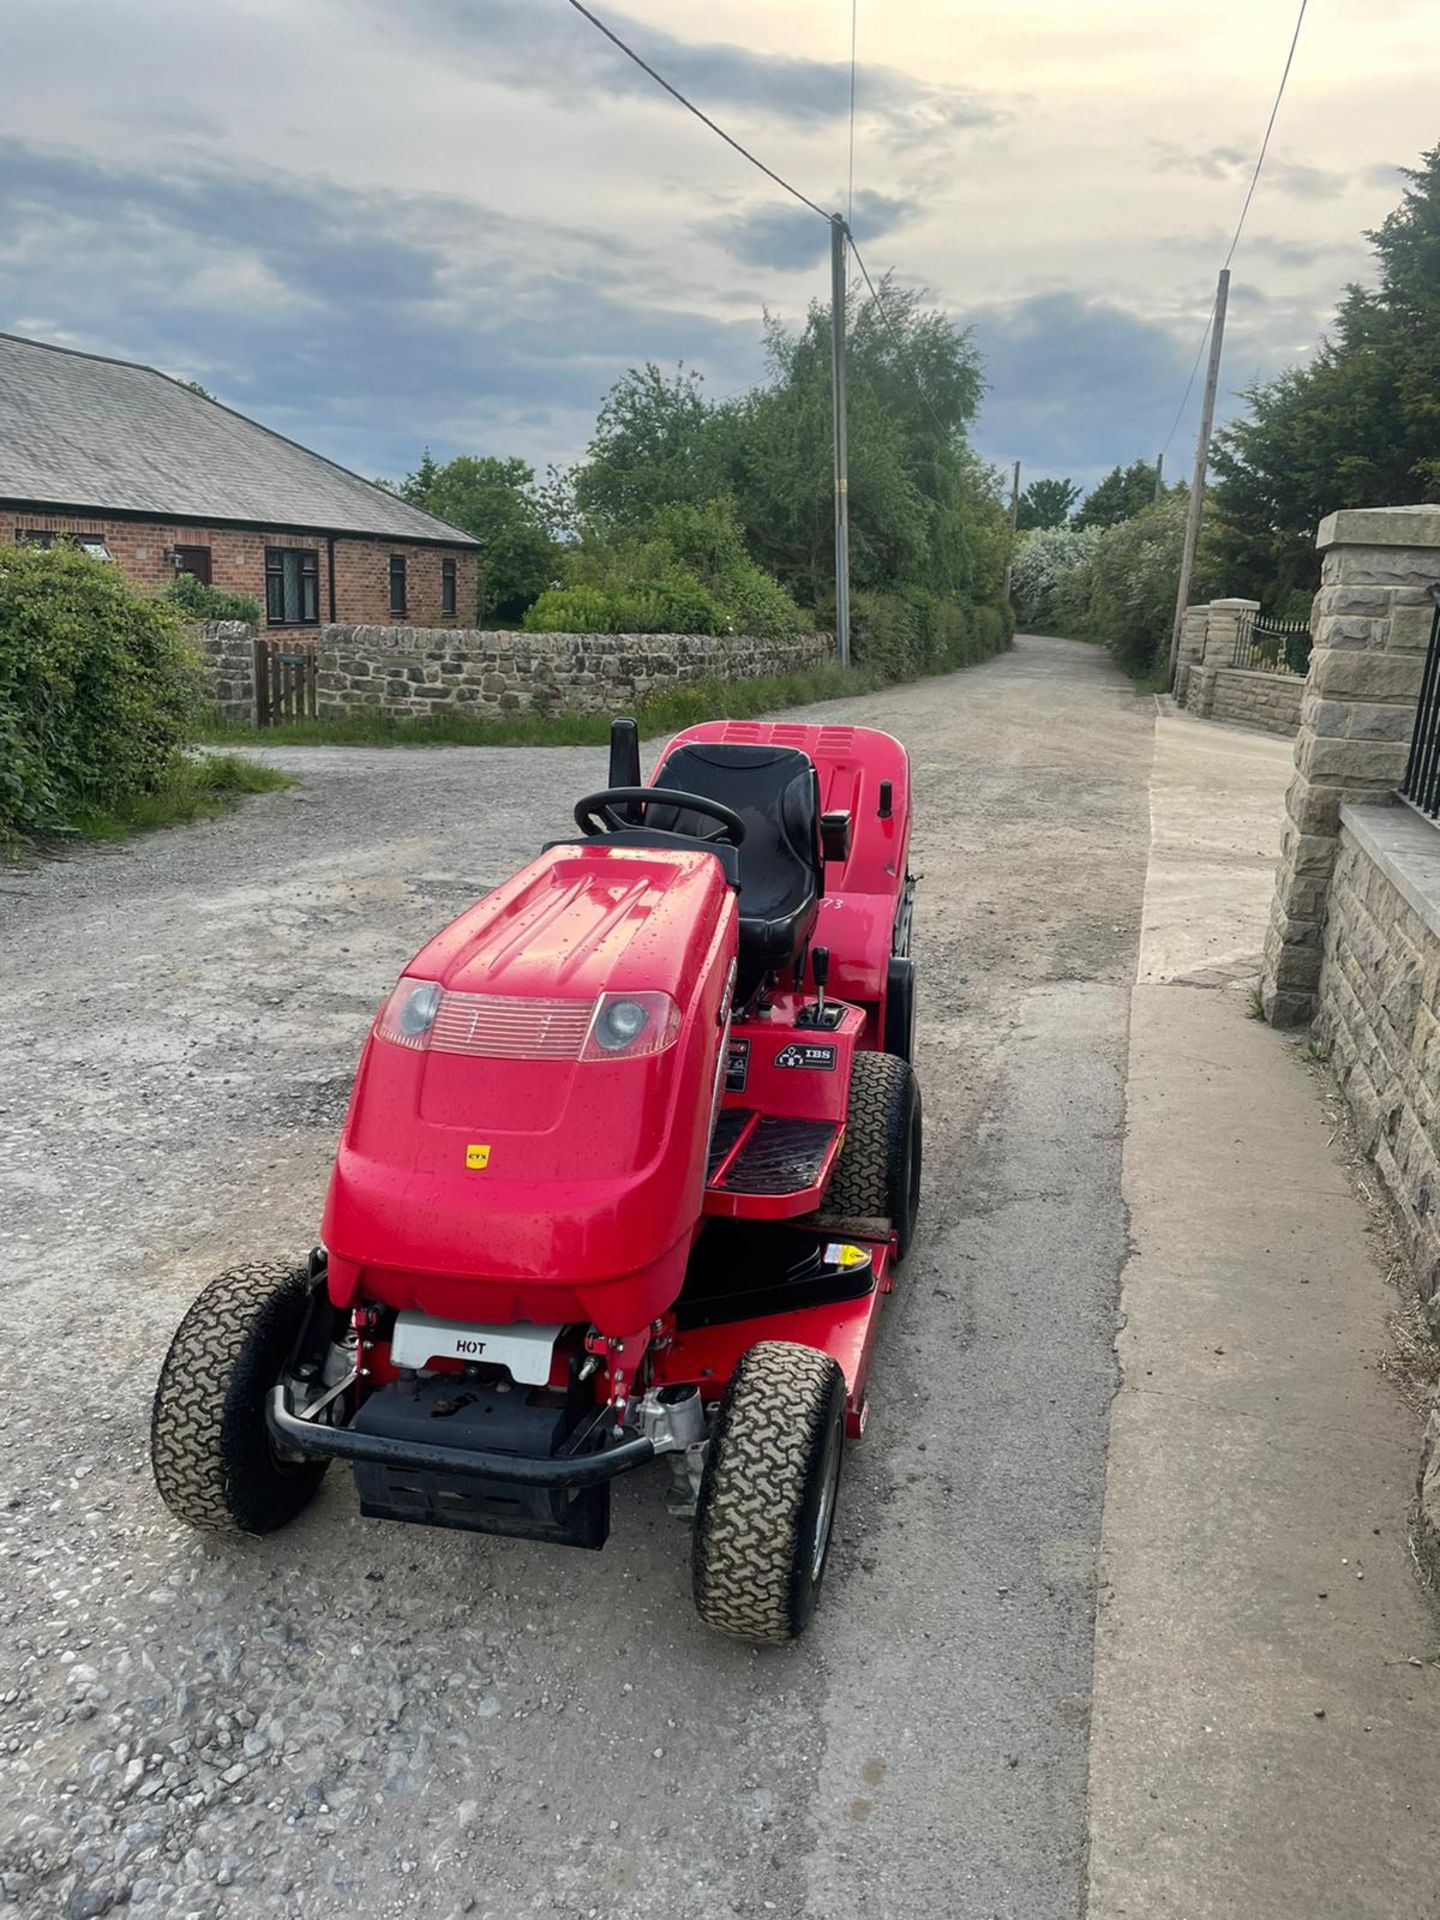 COUNTAX C25-4WD RIDE ON LAWN MOWER, RUNS AND WORKS, CUTS AND COLLECTS *NO VAT* - Image 2 of 7